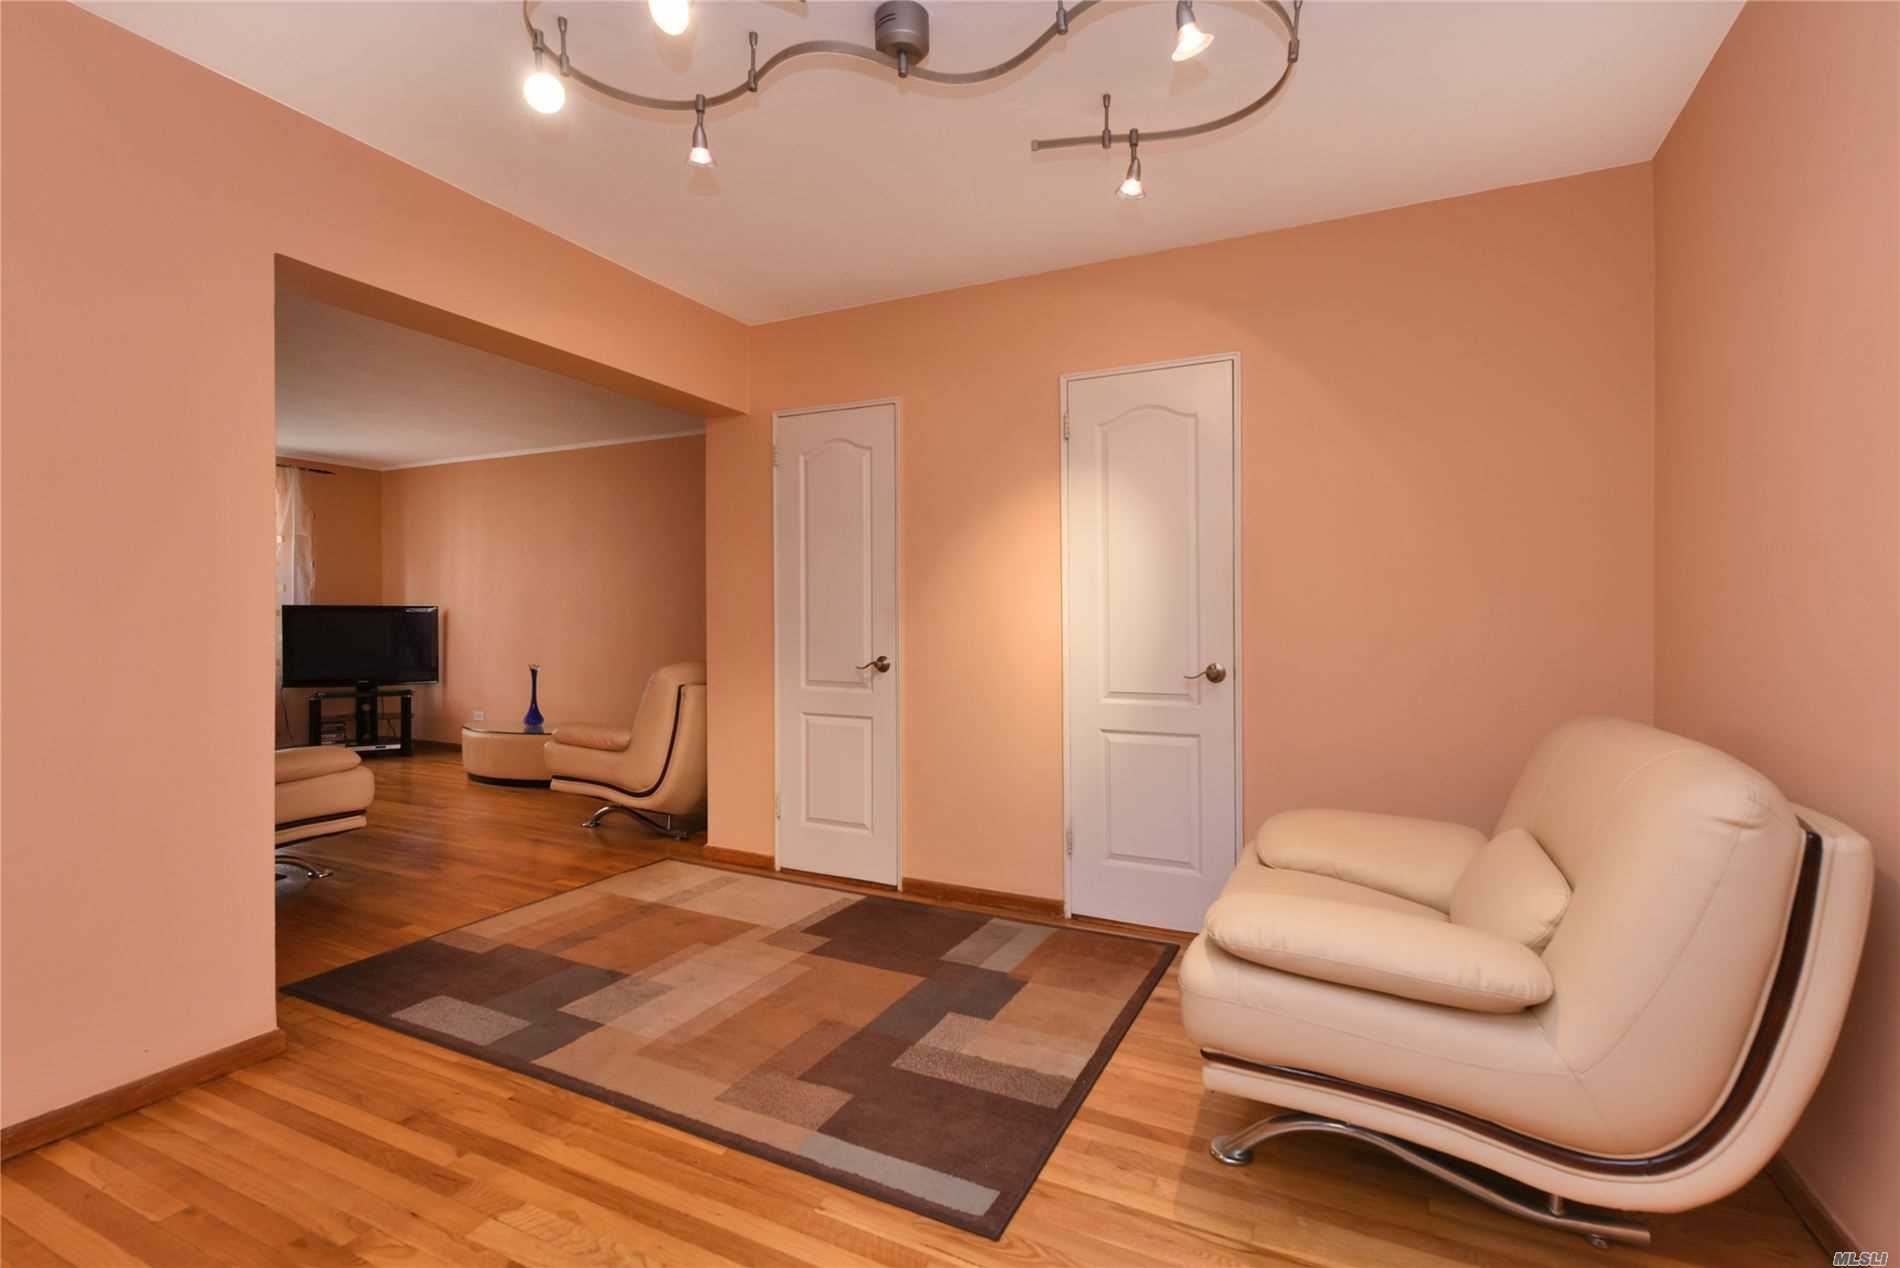 83-55 Woodhaven Blvd #1H, Woodhaven, NY 11421 - MLS#: 3194150